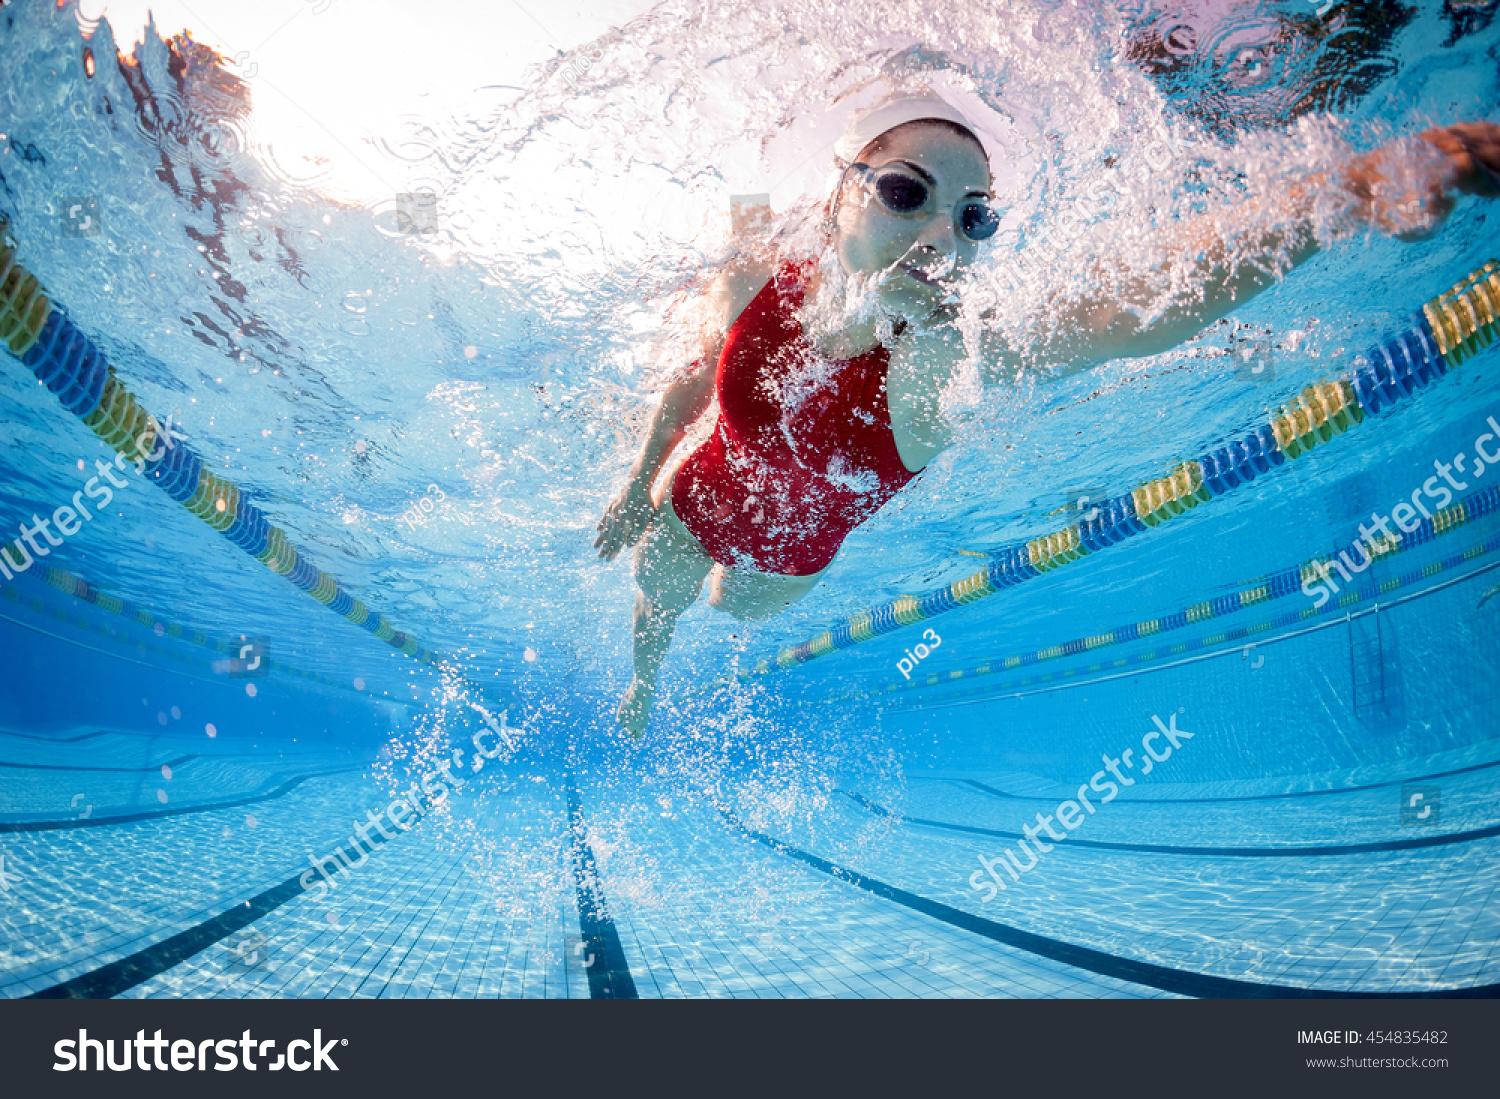 Professional Woman Swimmer Inside Swimming Pool.